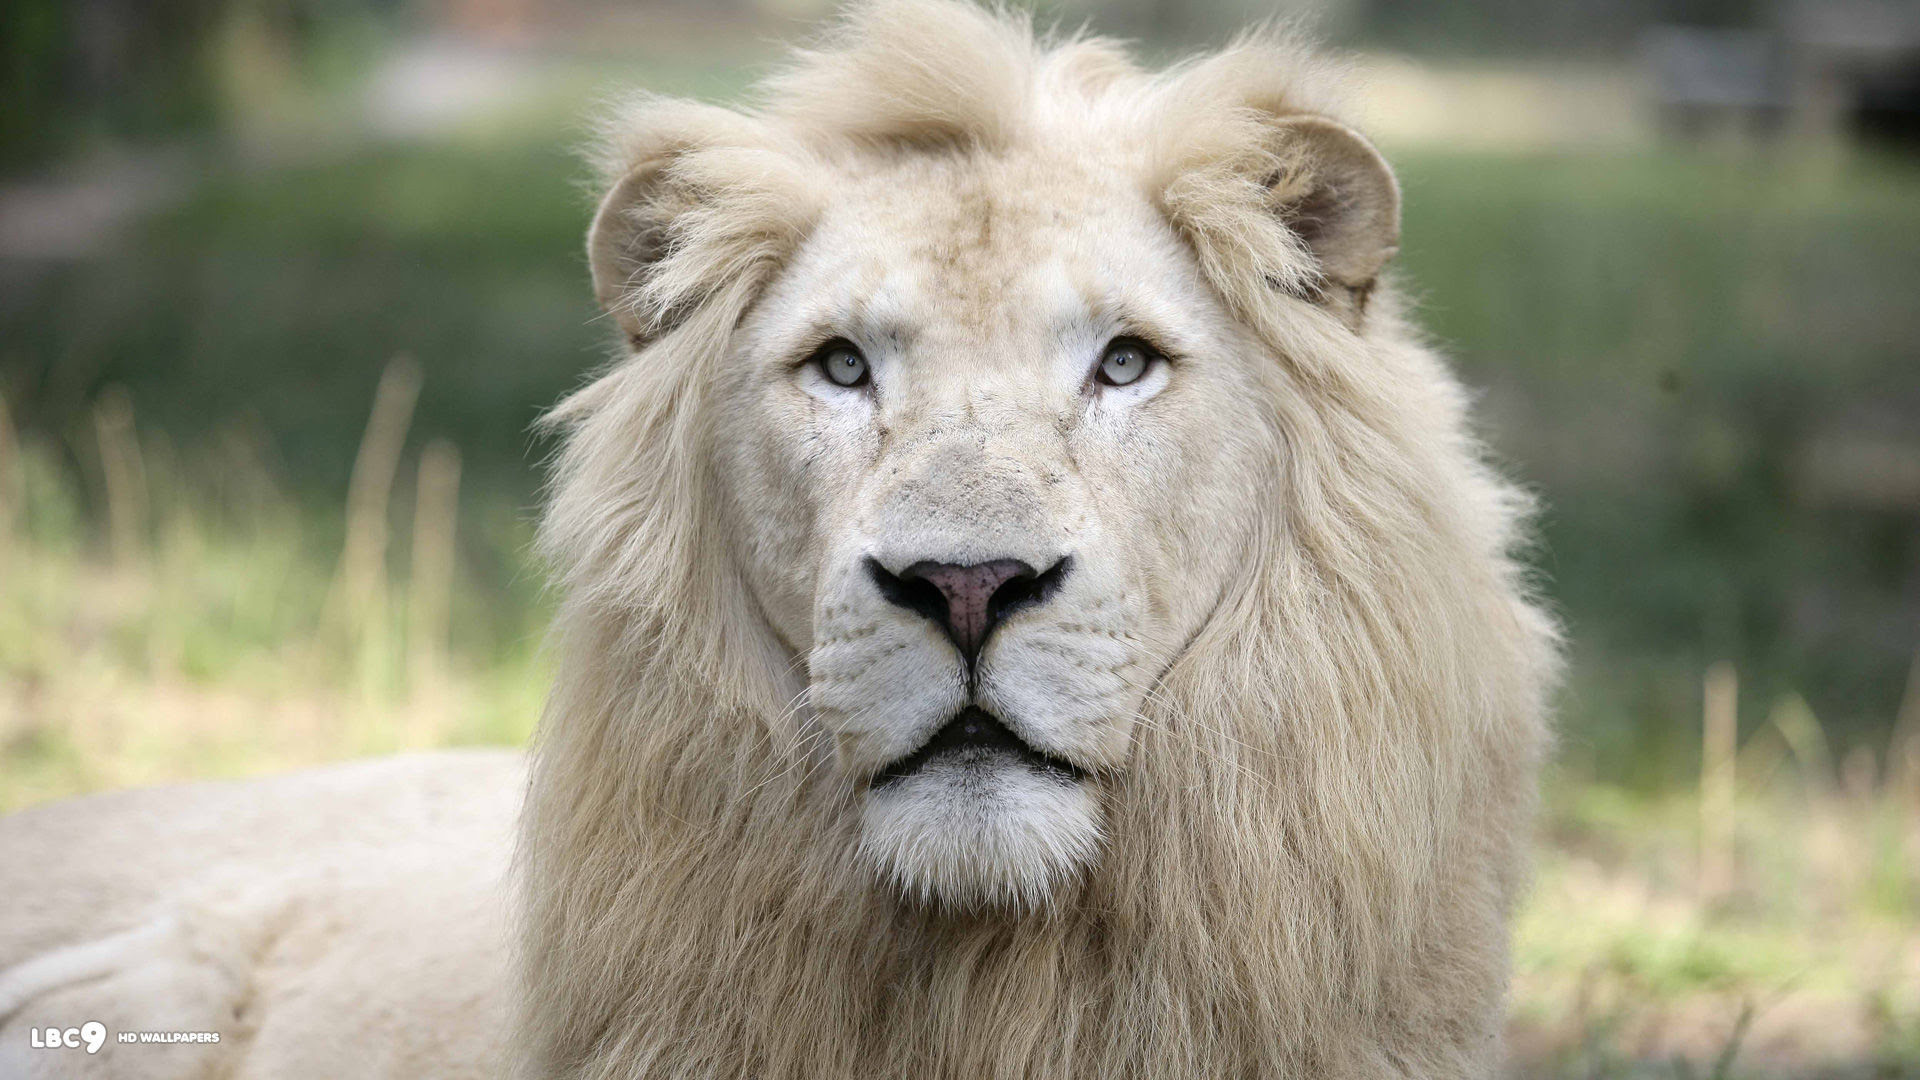 African White Lion Wallpaper 63 Images Images, Photos, Reviews